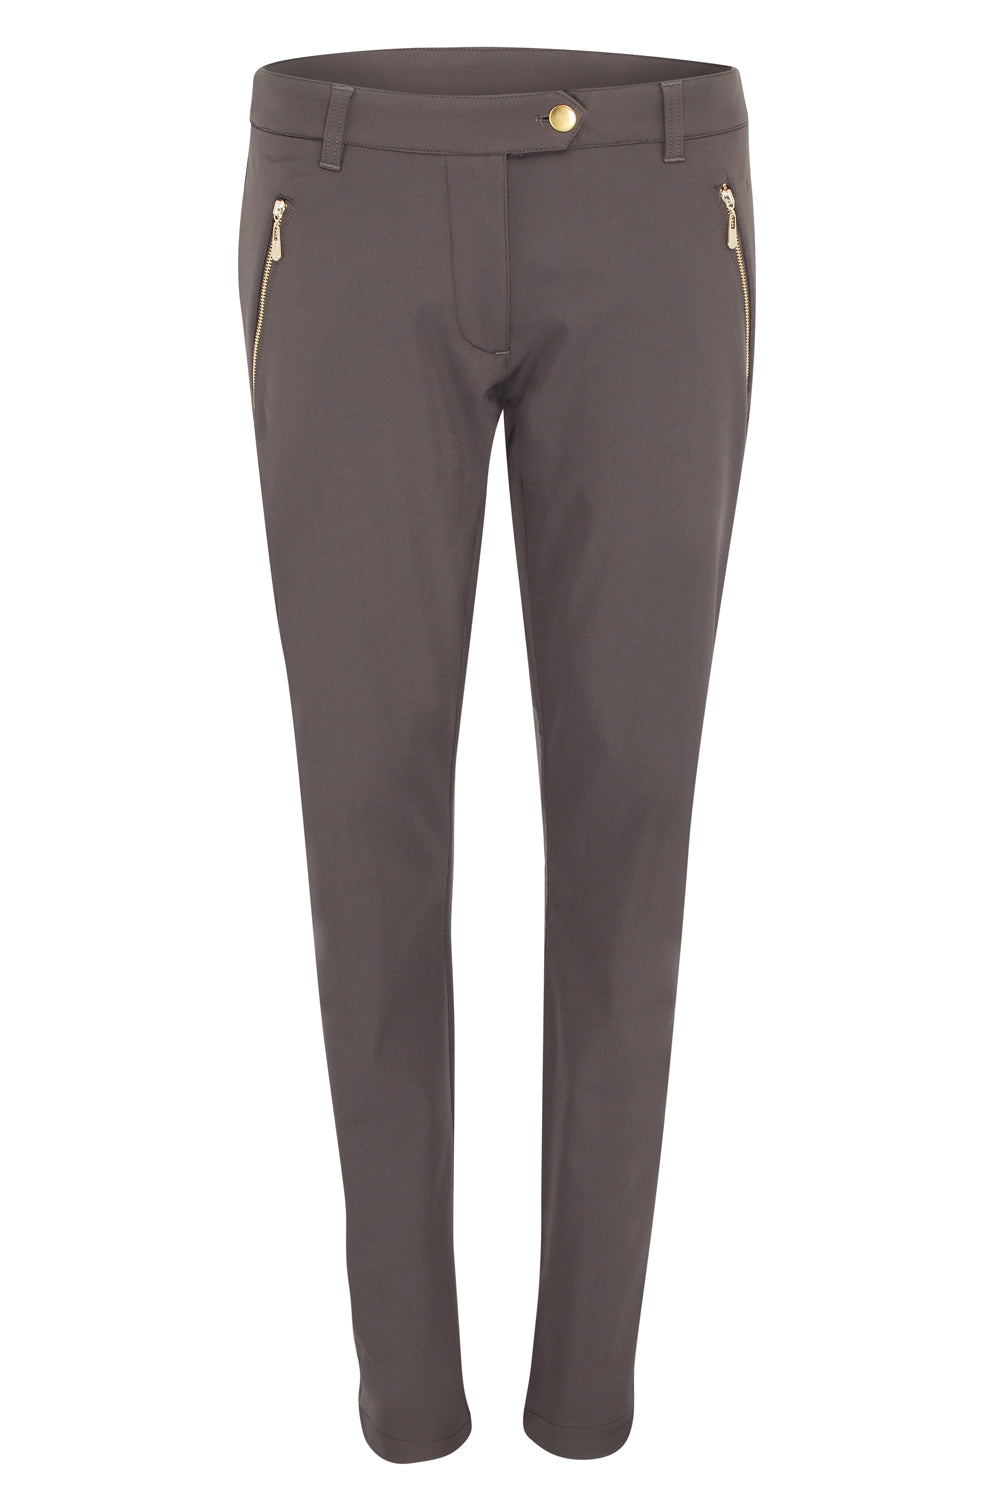 Alexandra Windstopper Trouser | Iron Gate